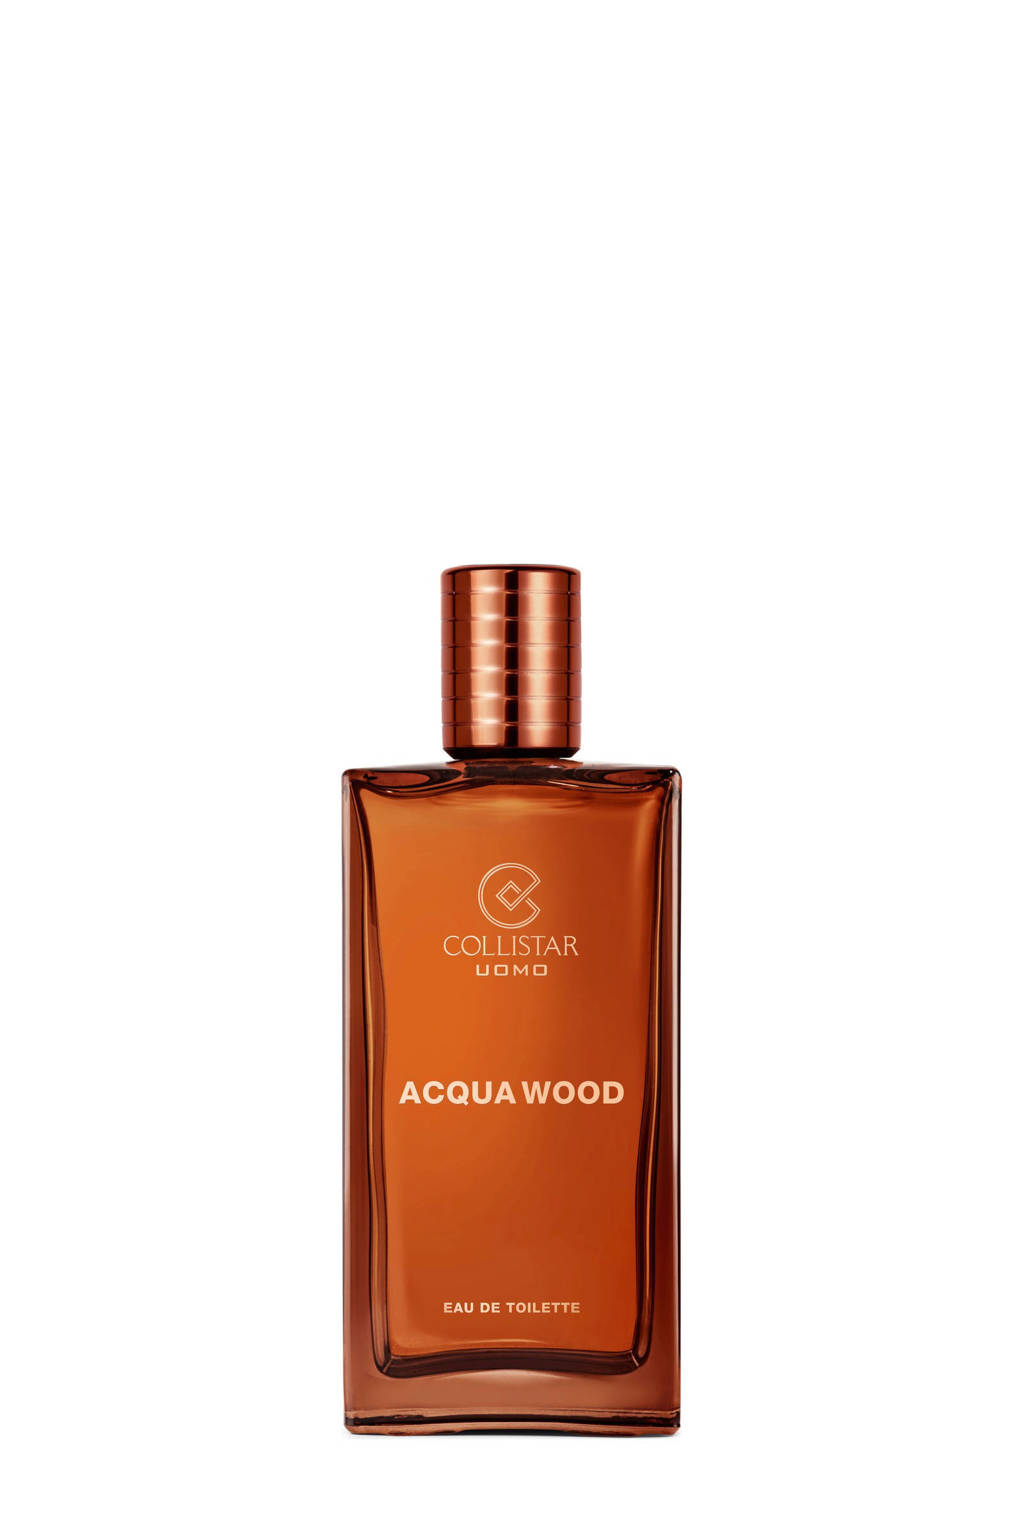 Collistar Acqua Wood eau de toilette - 50 ml